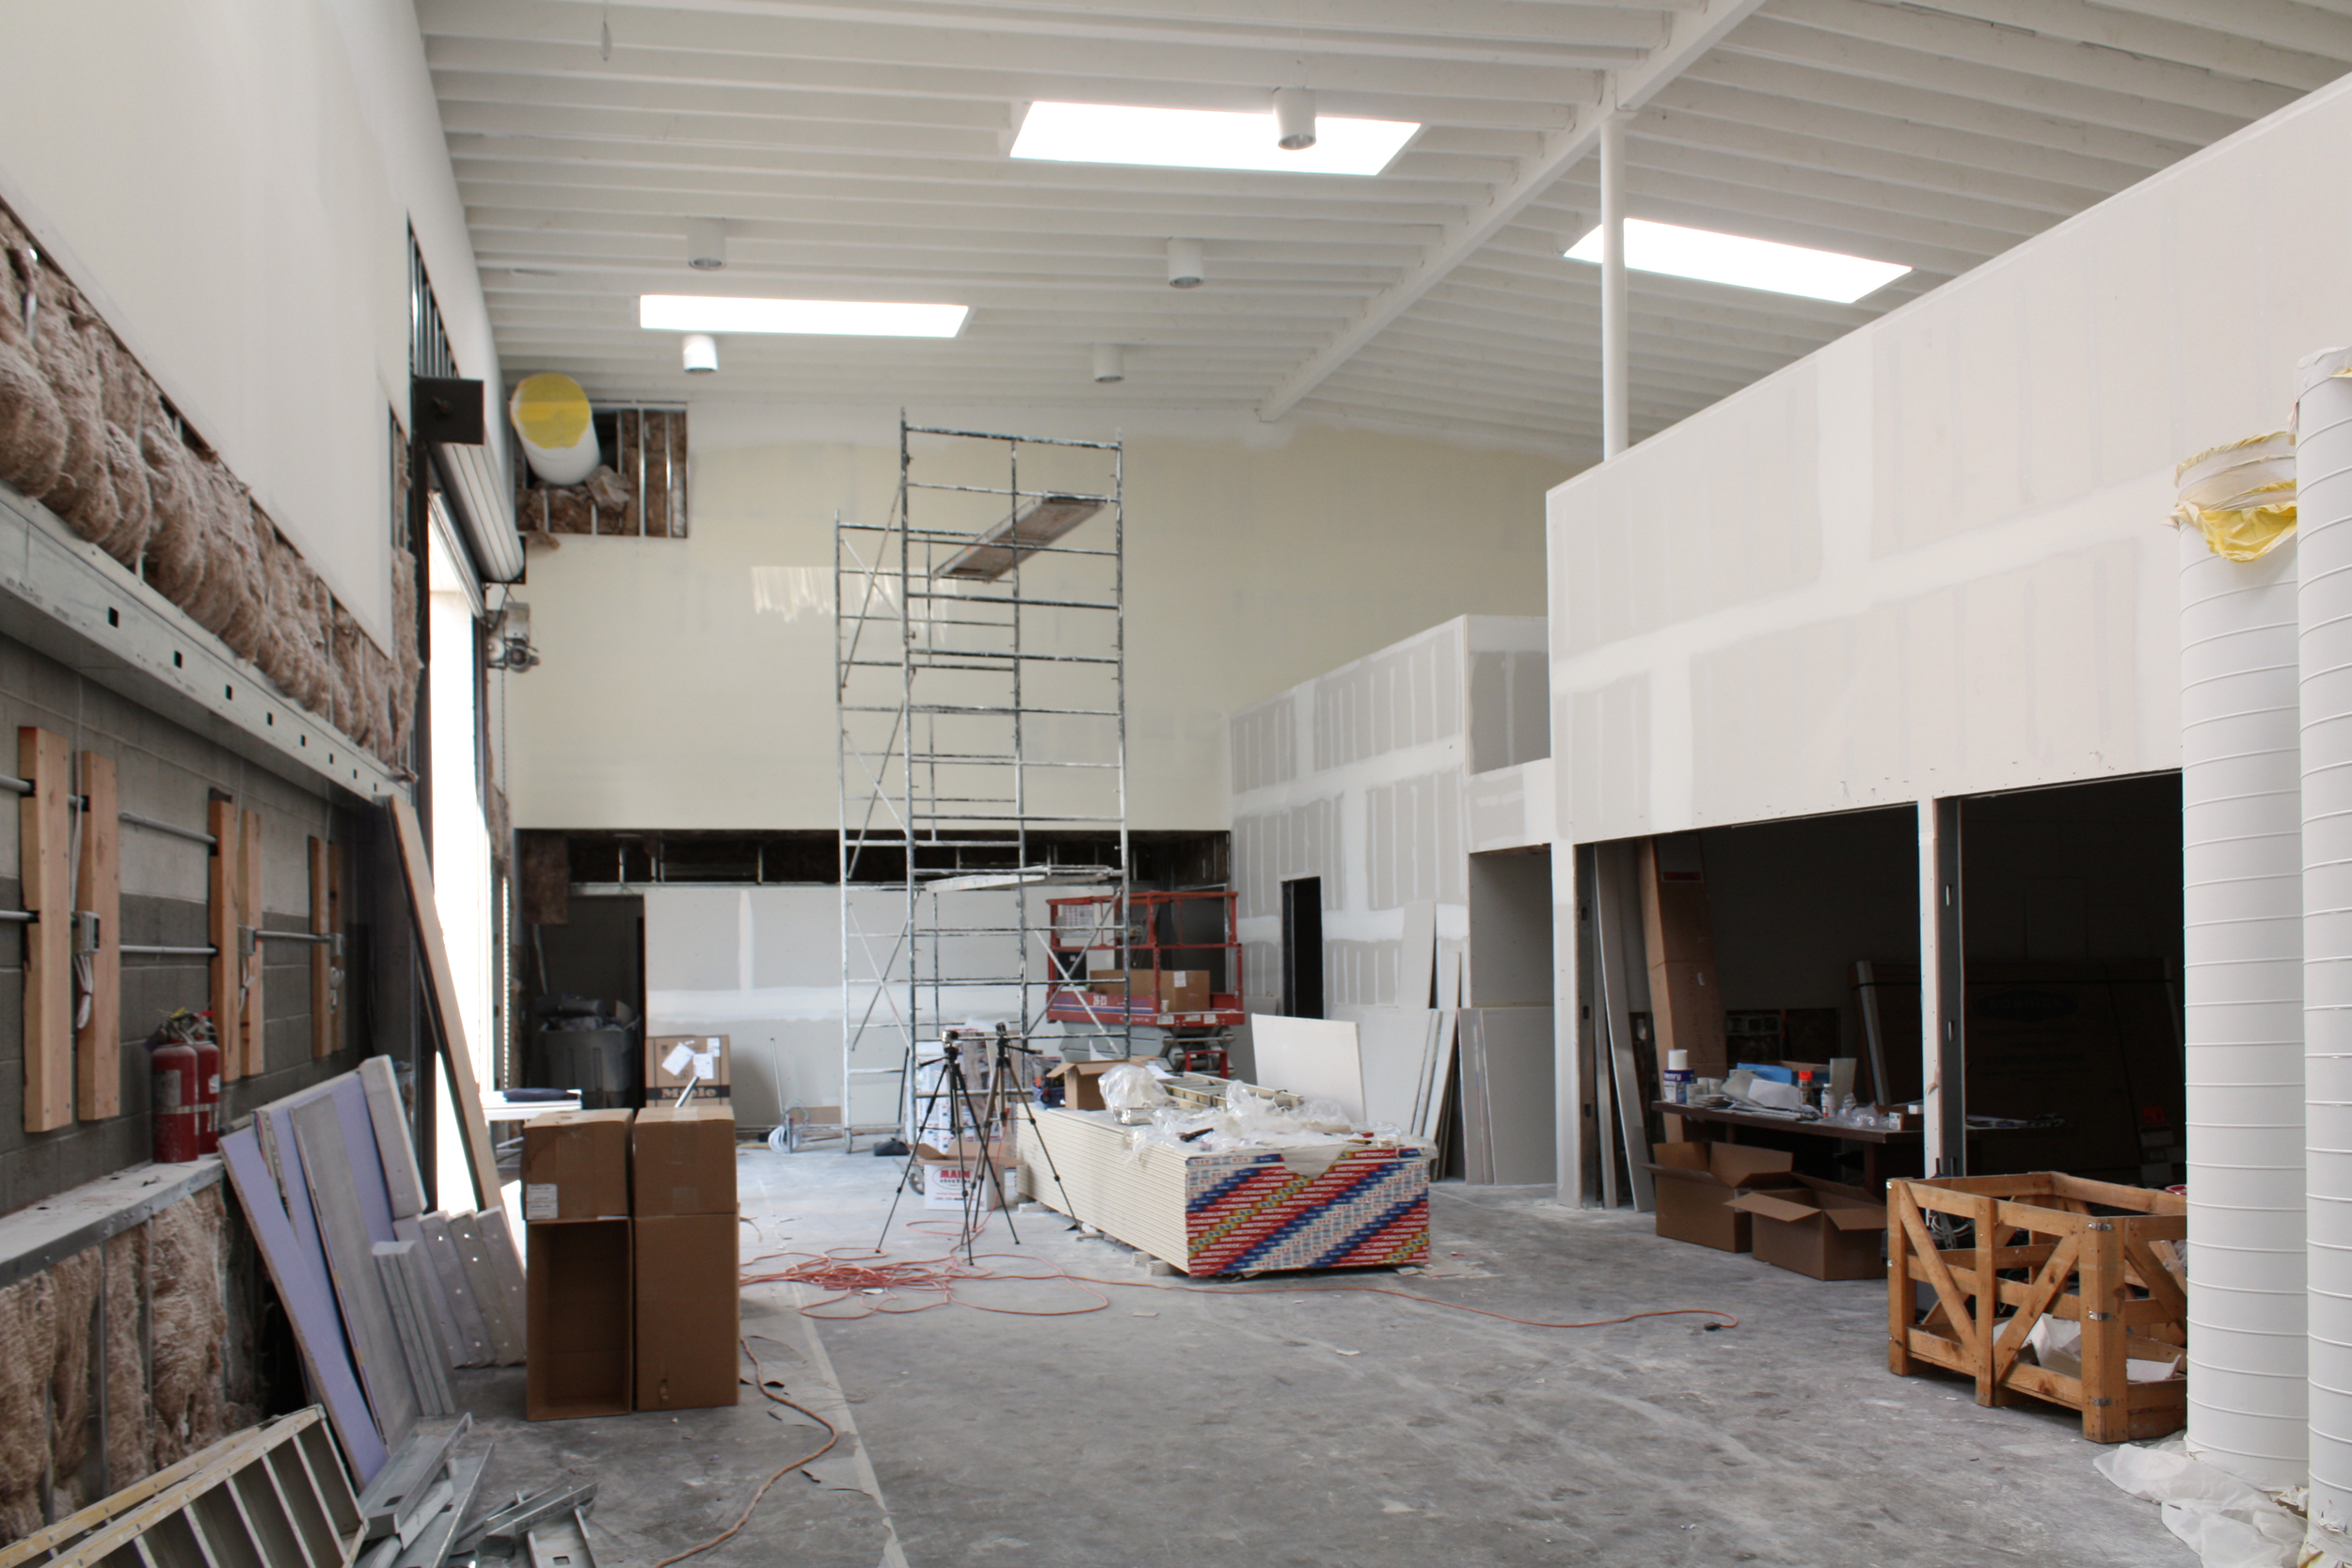 Training room main space with conference room on the right.